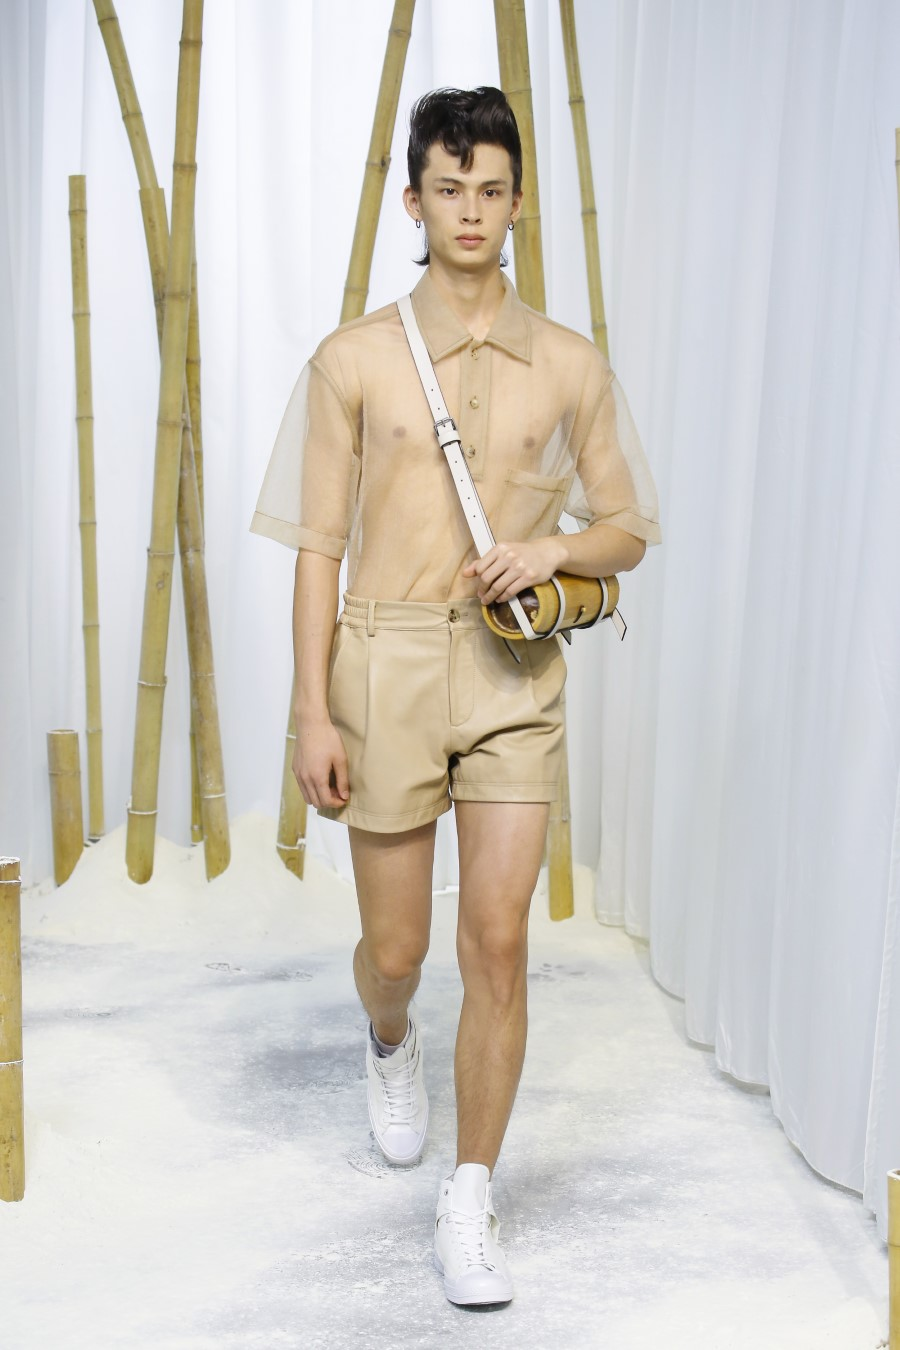 Feng Chen Wang Printemps Été 2020 - London Fashion Week Men's